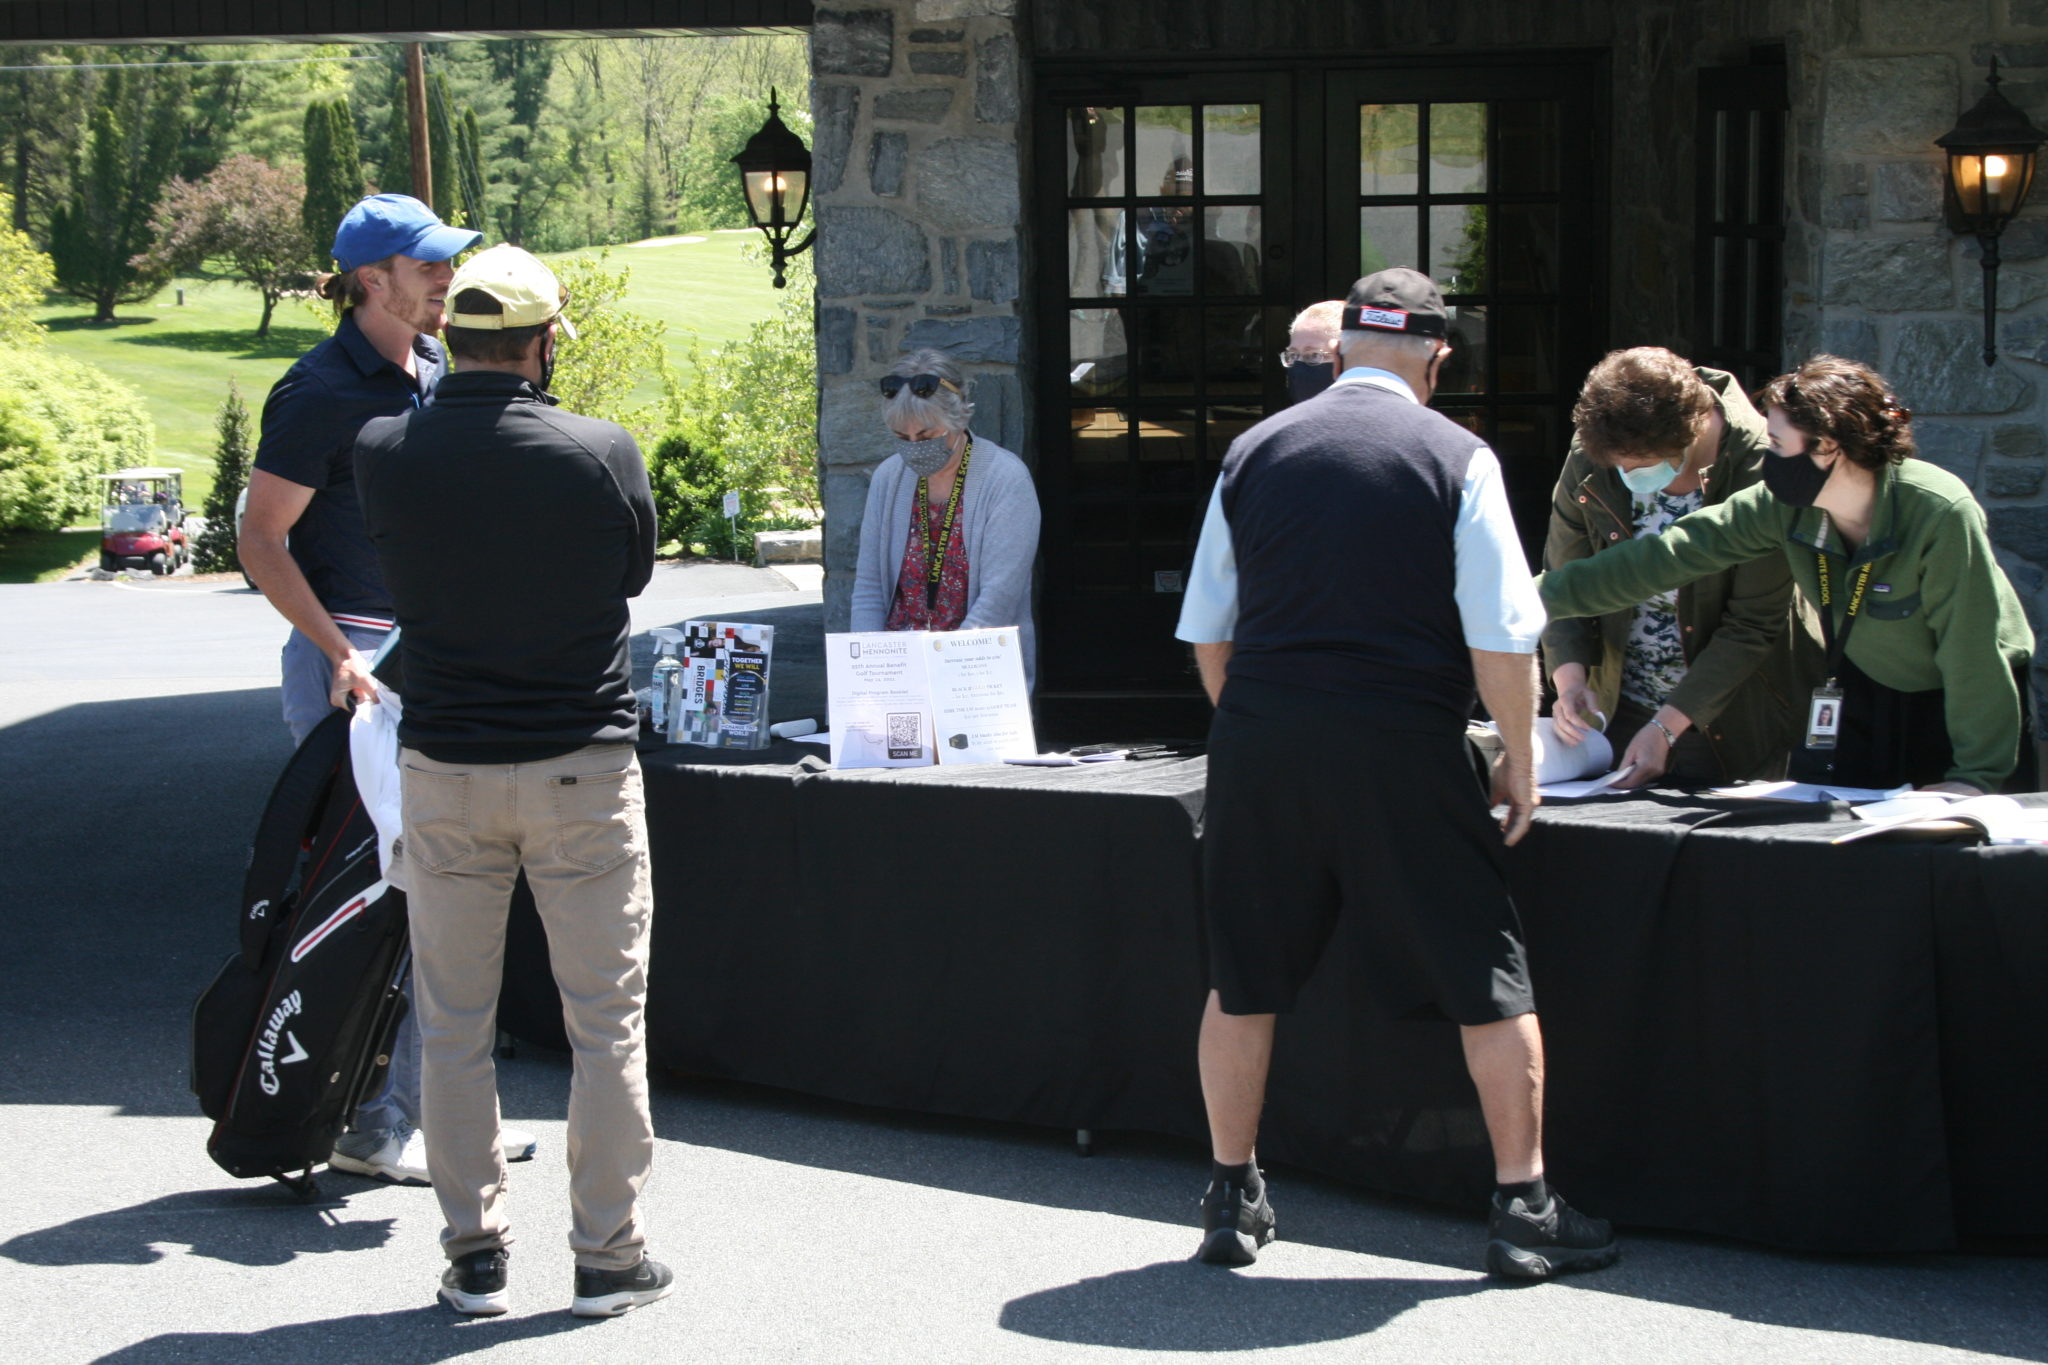 golfers at registration table